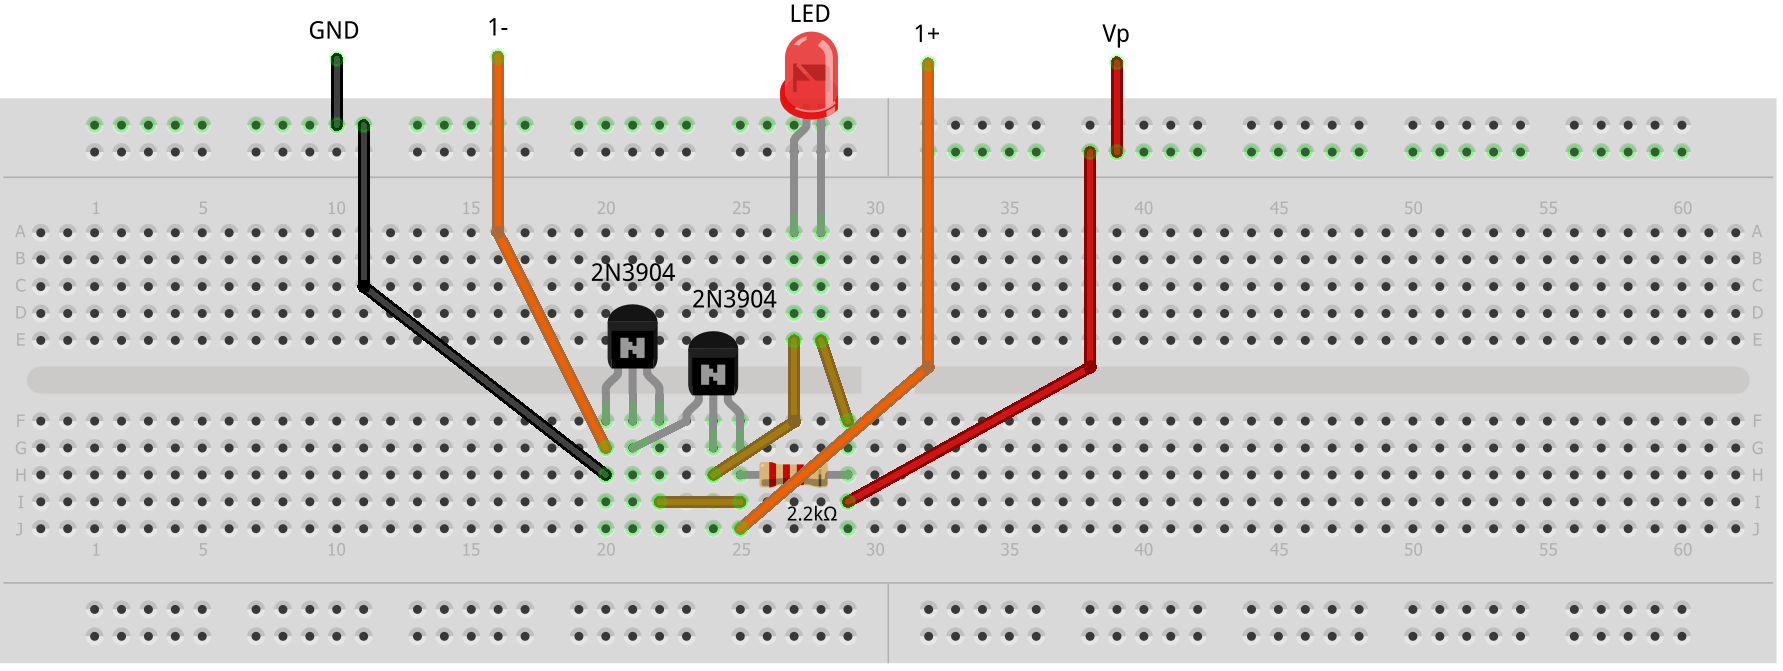 Activity Led As Light Sensor Analog Devices Wiki Electronic Circuit Design Objective Questions Step 2 Hardware Setup